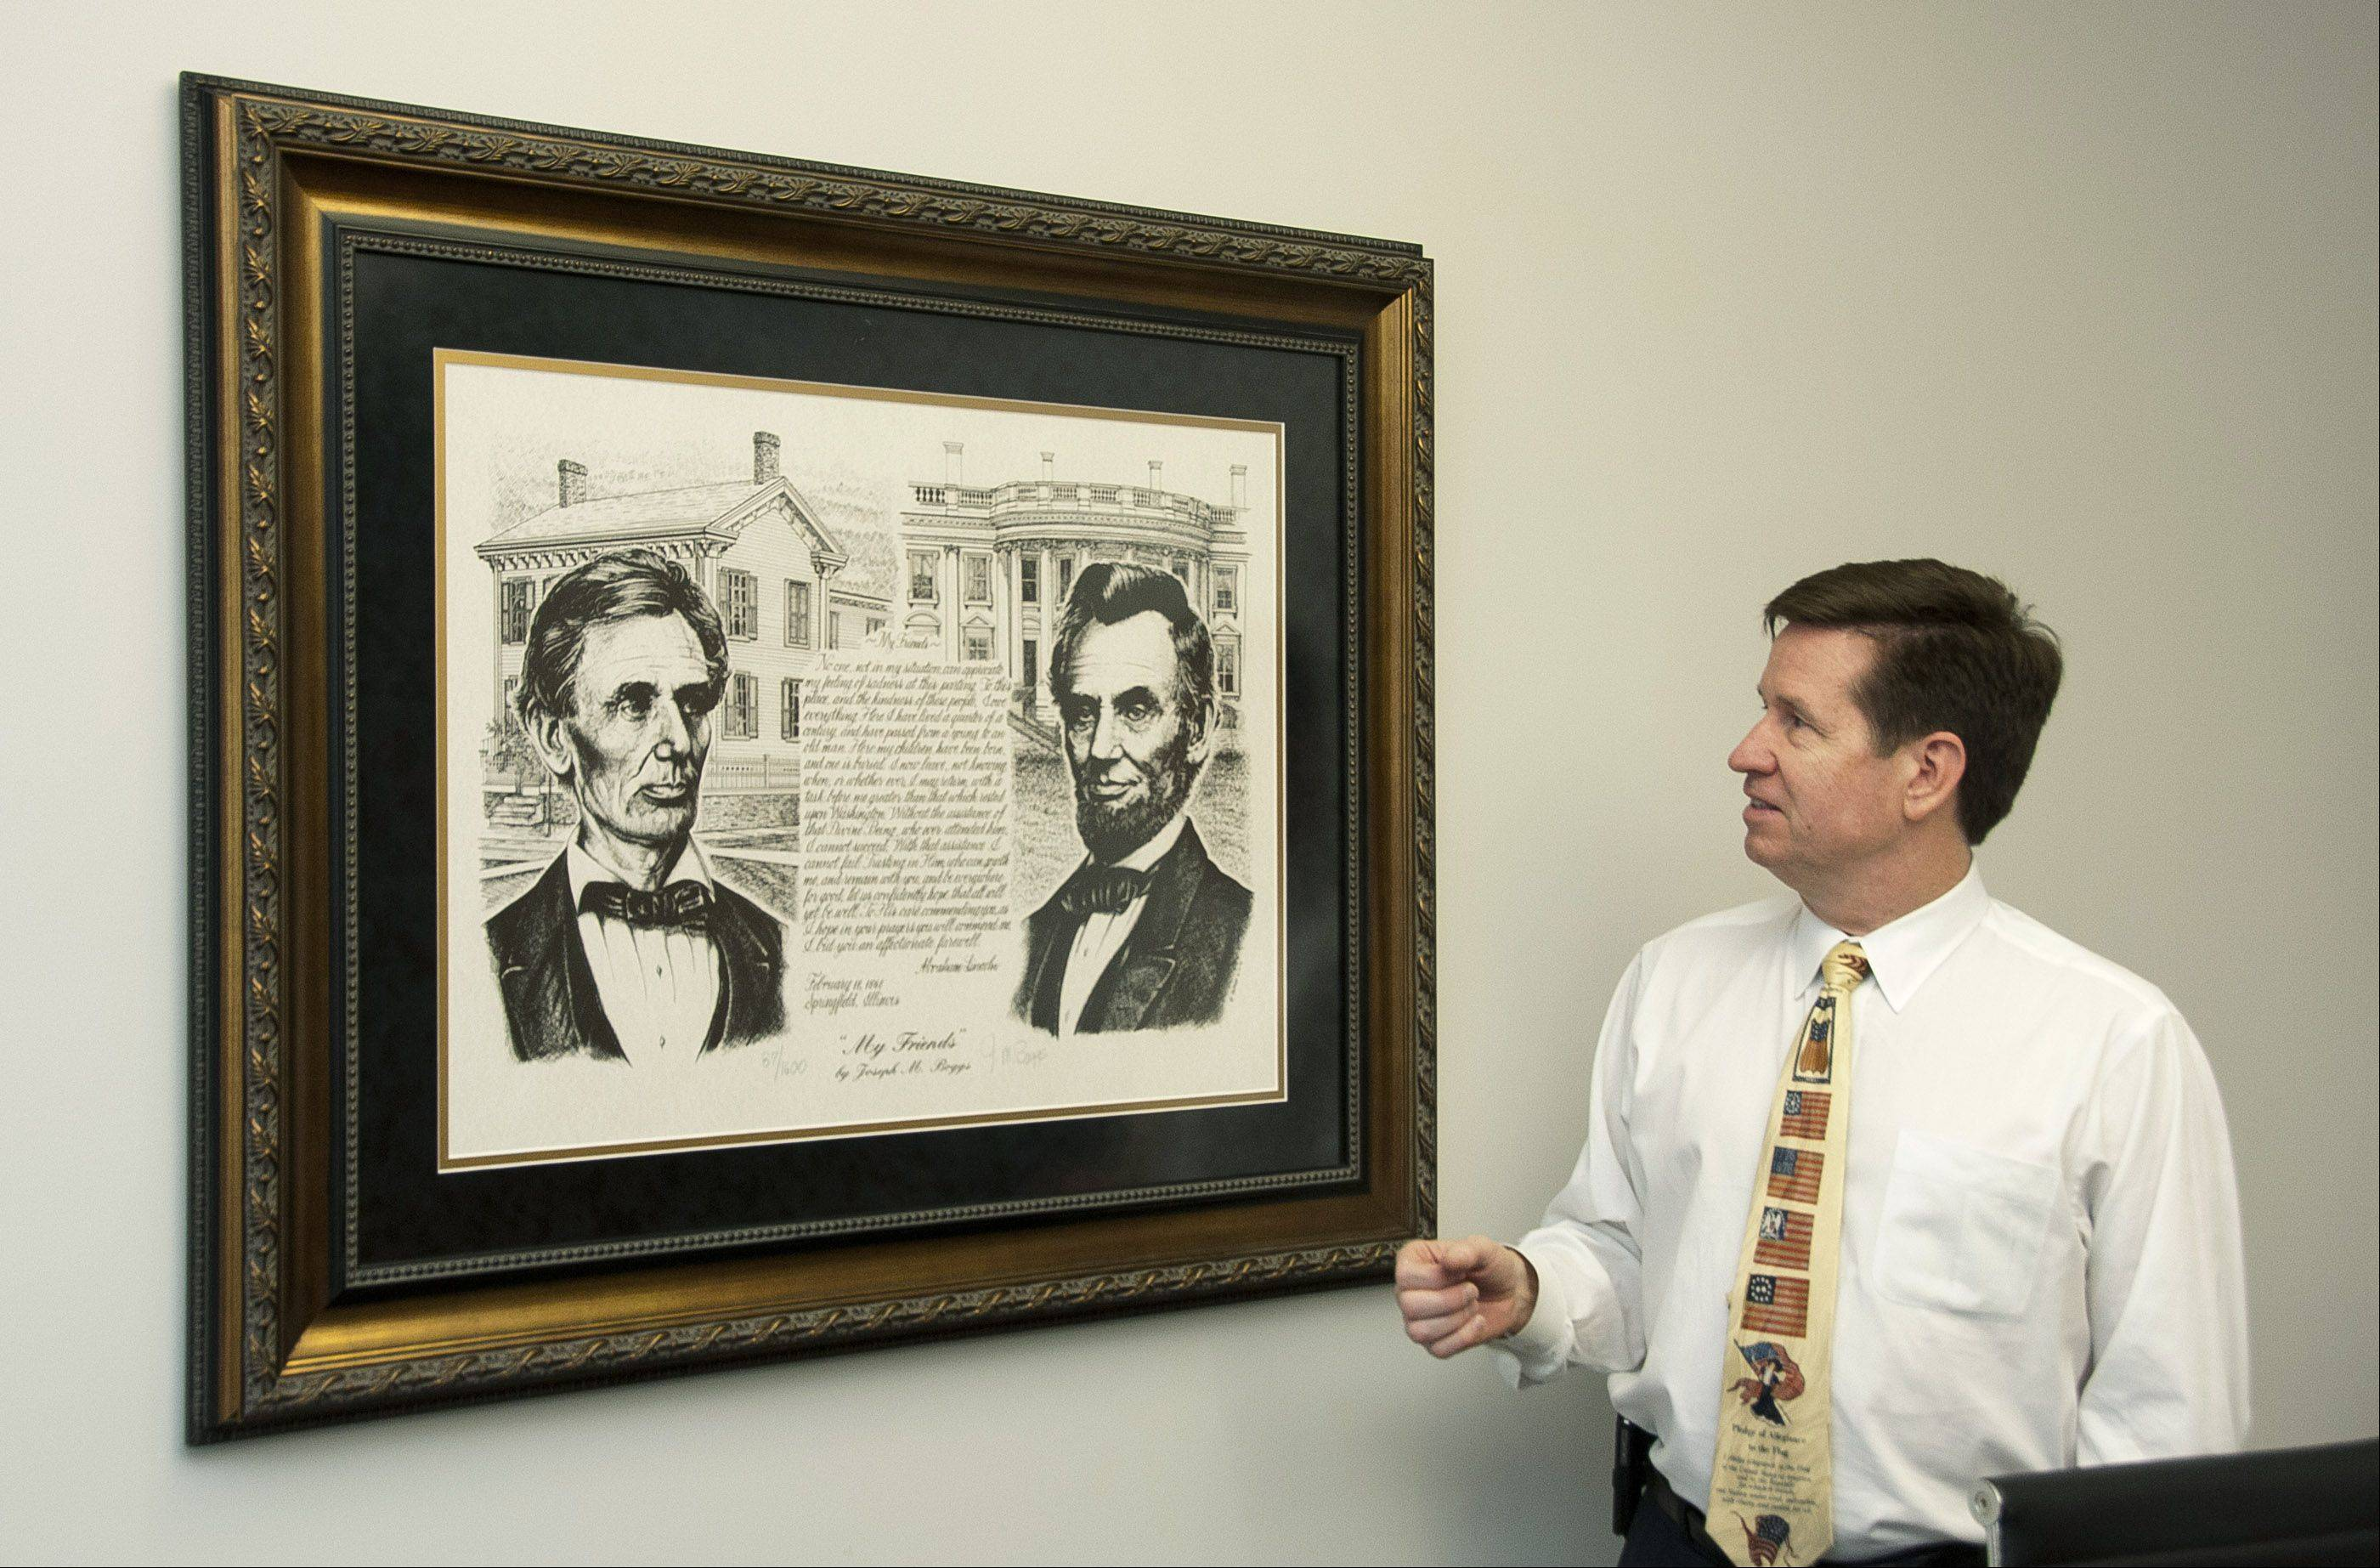 Lincoln authority and business owner Mickey Straub looks at a portrait of his hero, Abraham Lincoln, showing his evolution from Illinois lawyer to the first Republican president of the United States.